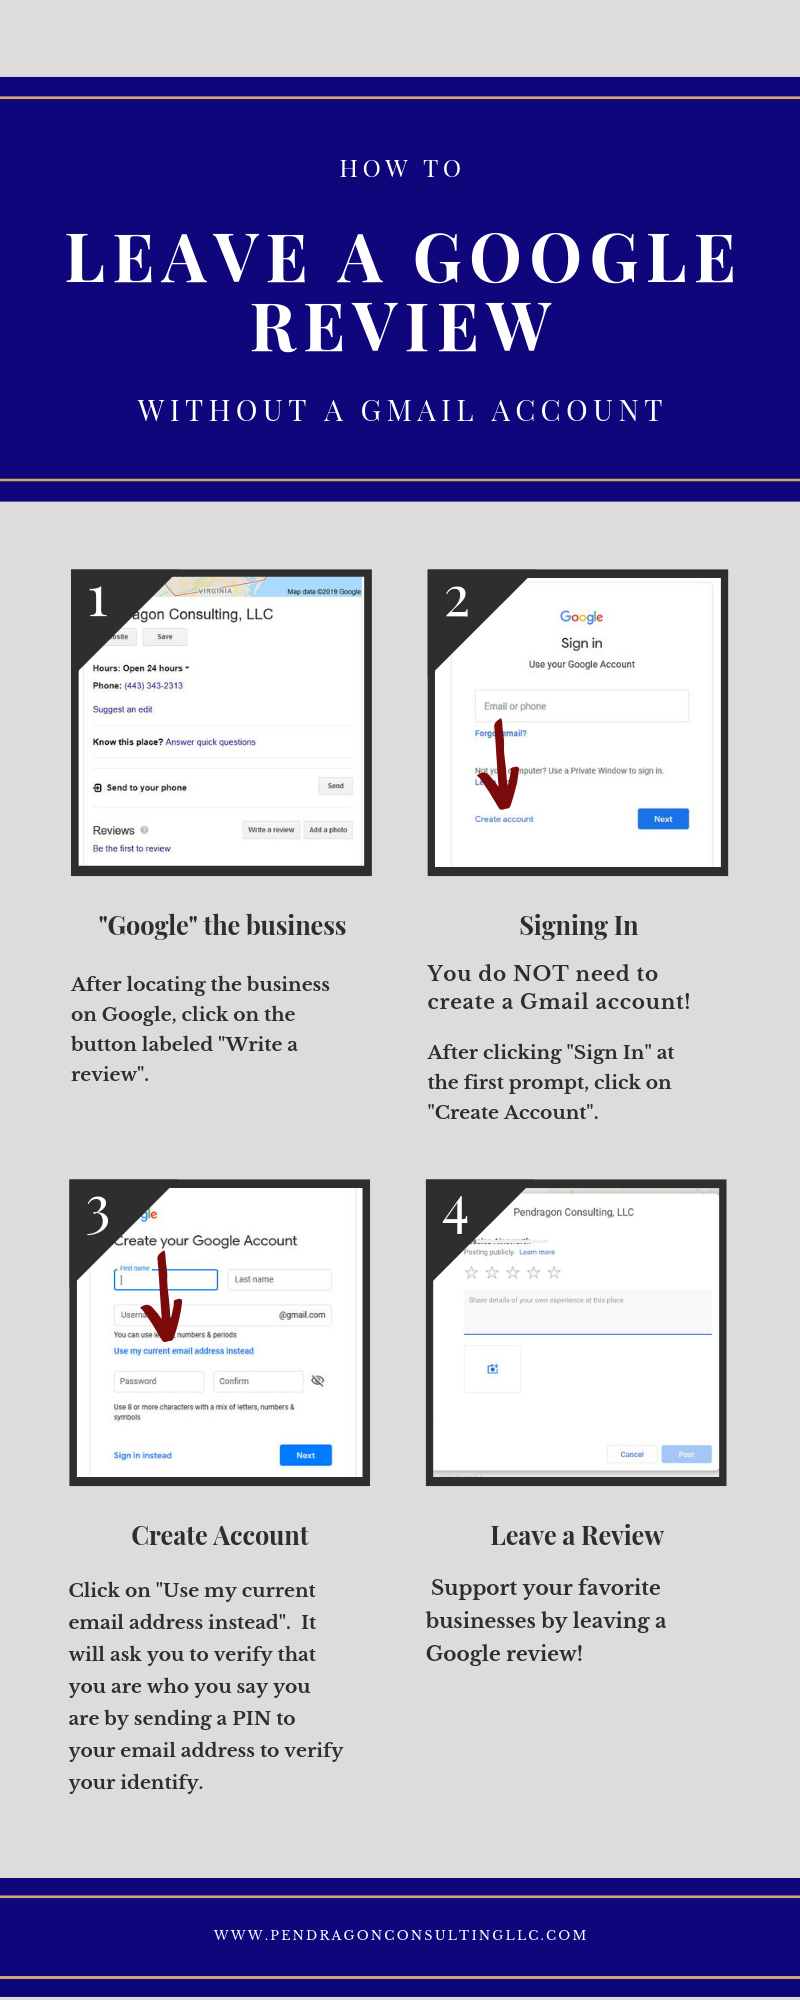 How to Leave a Google Review without a Gmail Account